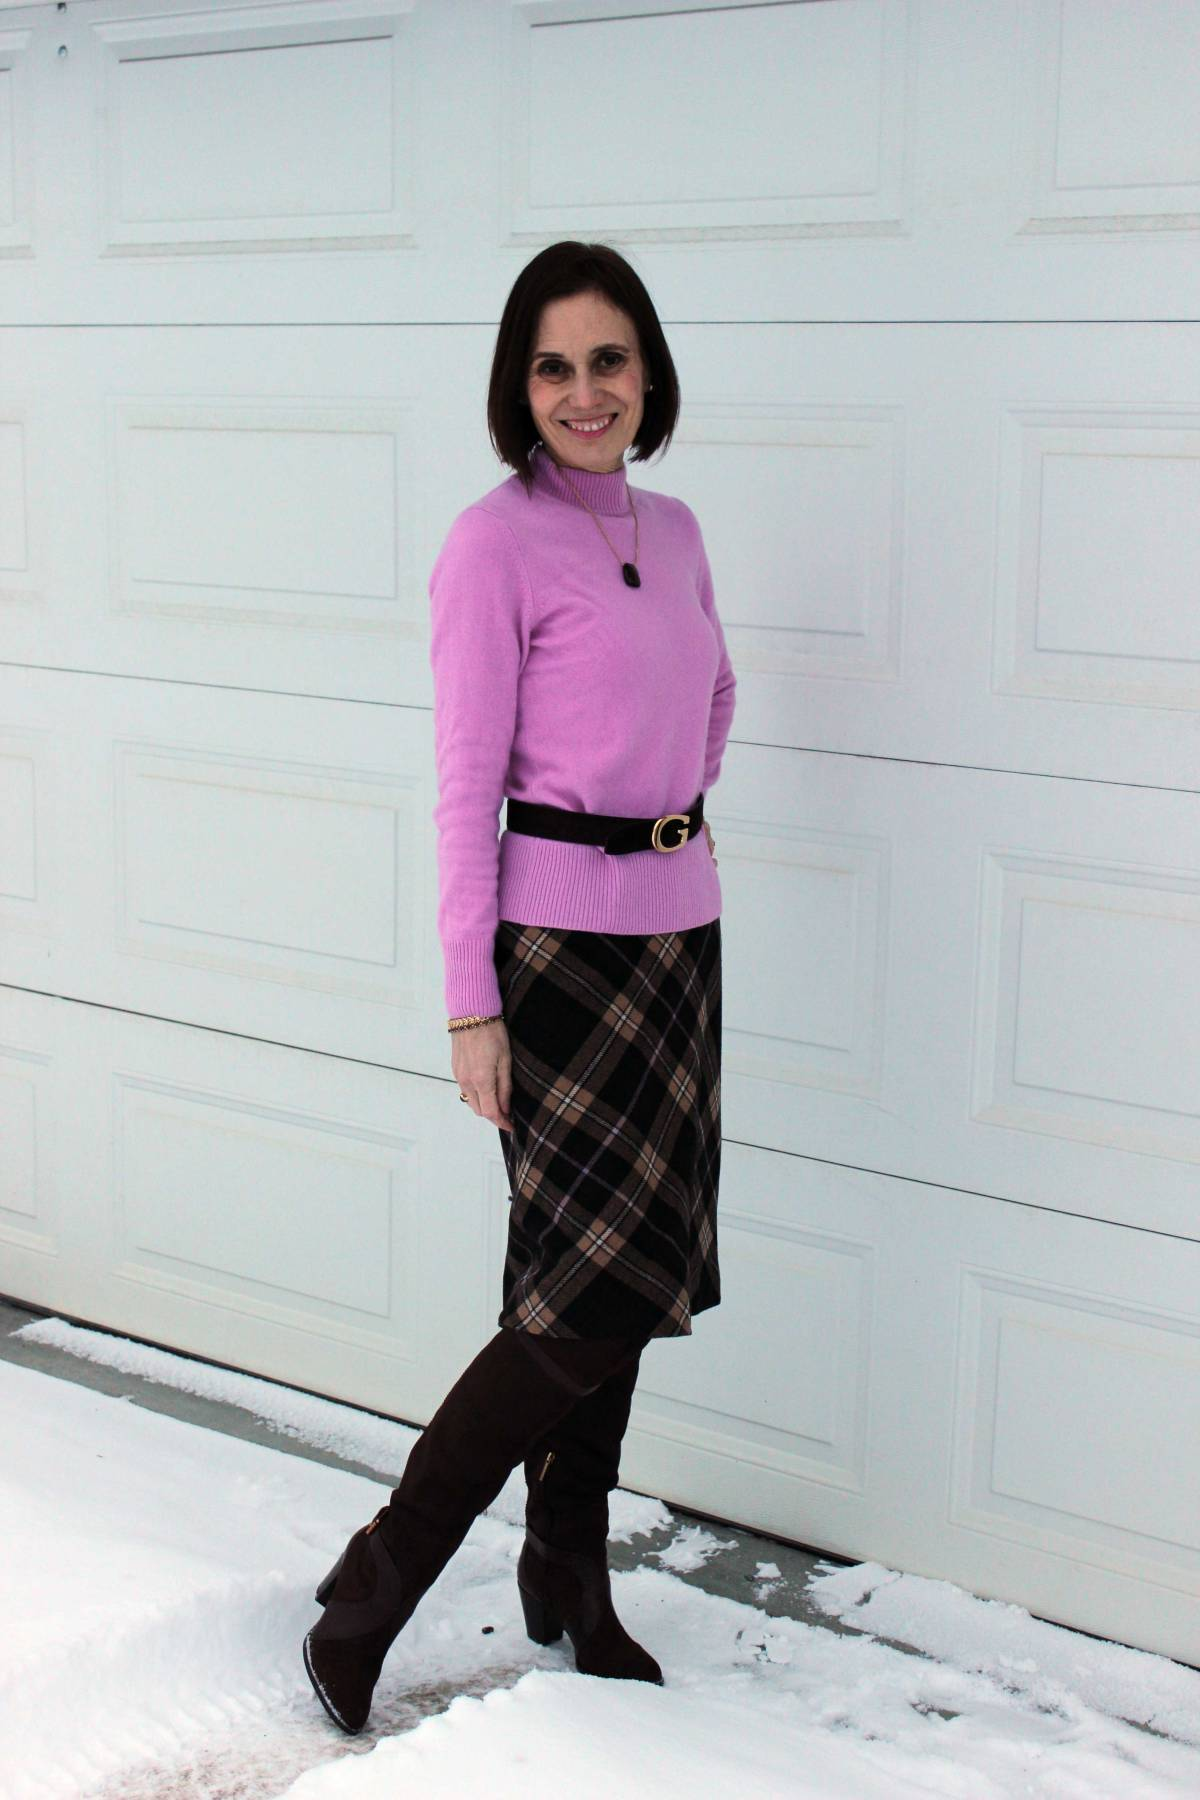 #over40fashion #fashionover50 How to style over-the-knee boots: example plaid skirt for work in the weekly Ageless Style series @ High Latitude Style @ http://www.highlatitudestyle.com